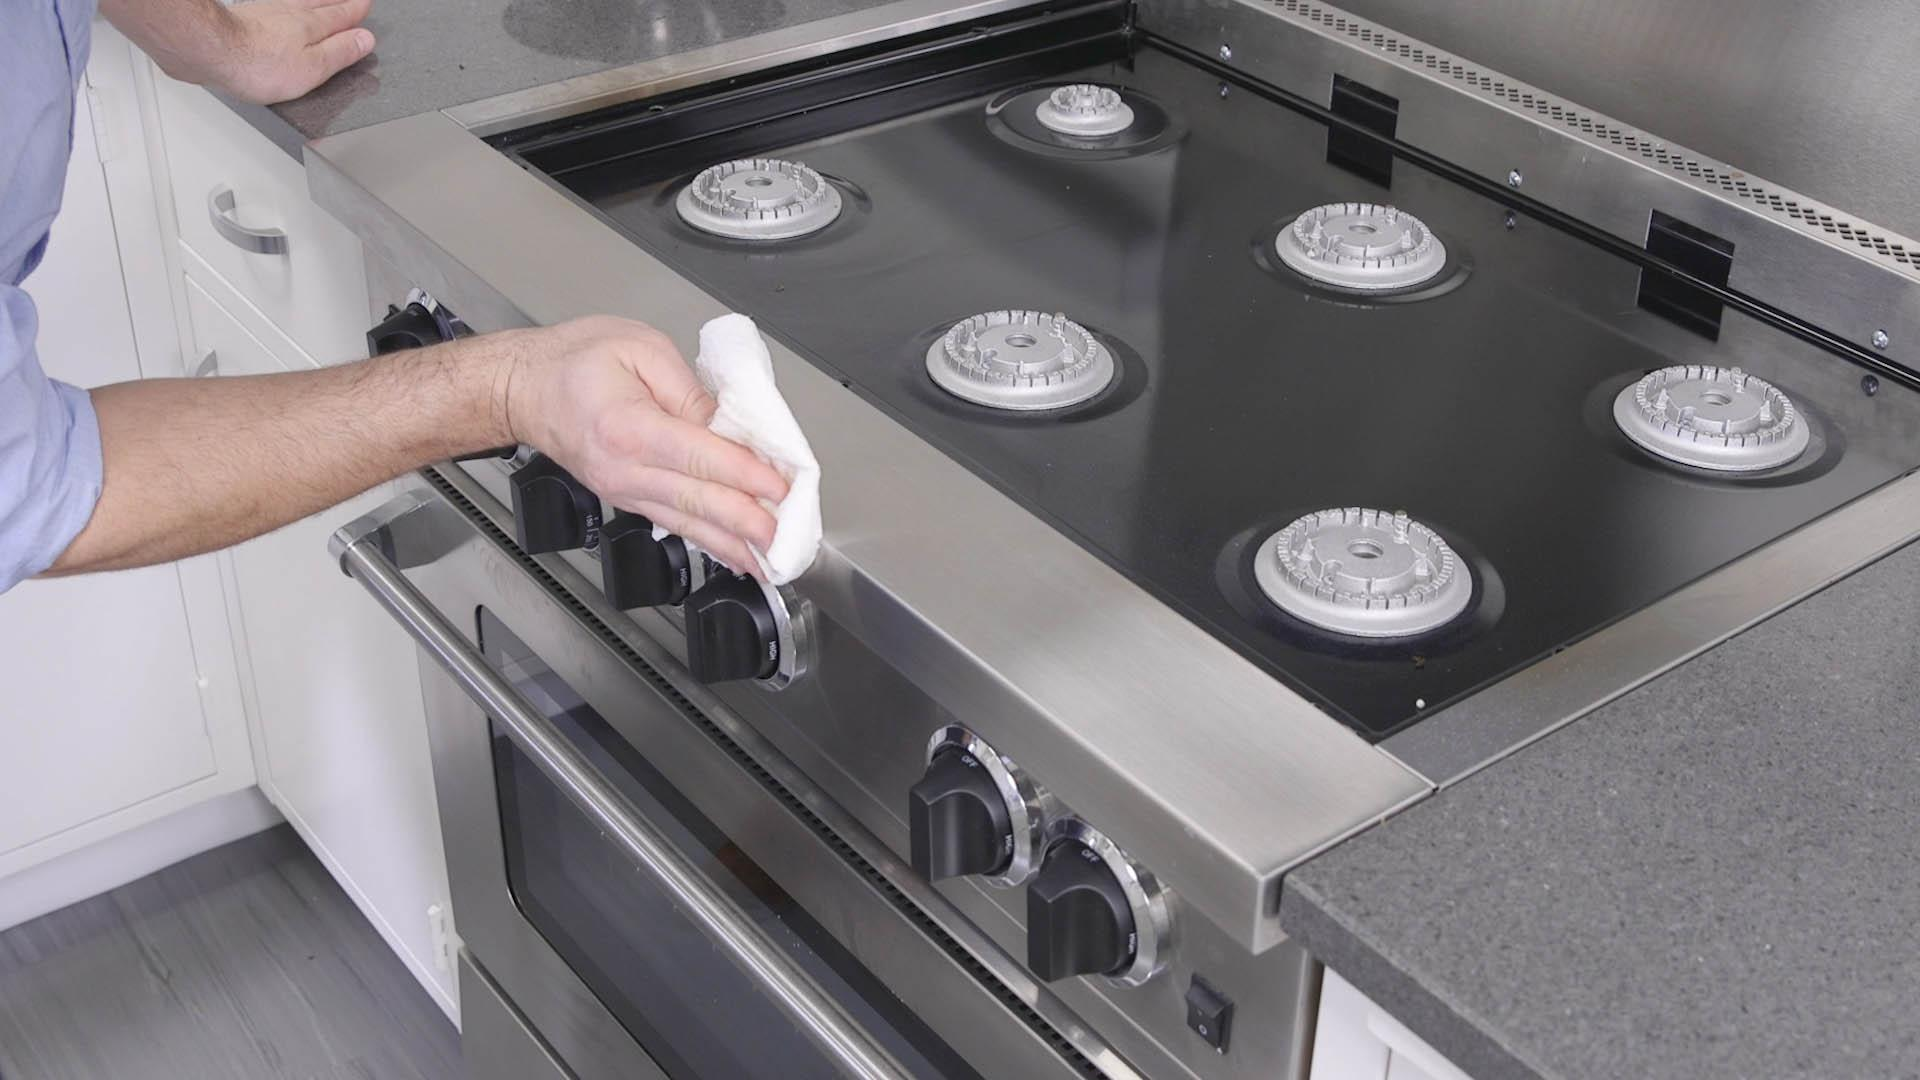 How to Clean a Dirty Oven and Grimy Stovetop - Consumer Reports